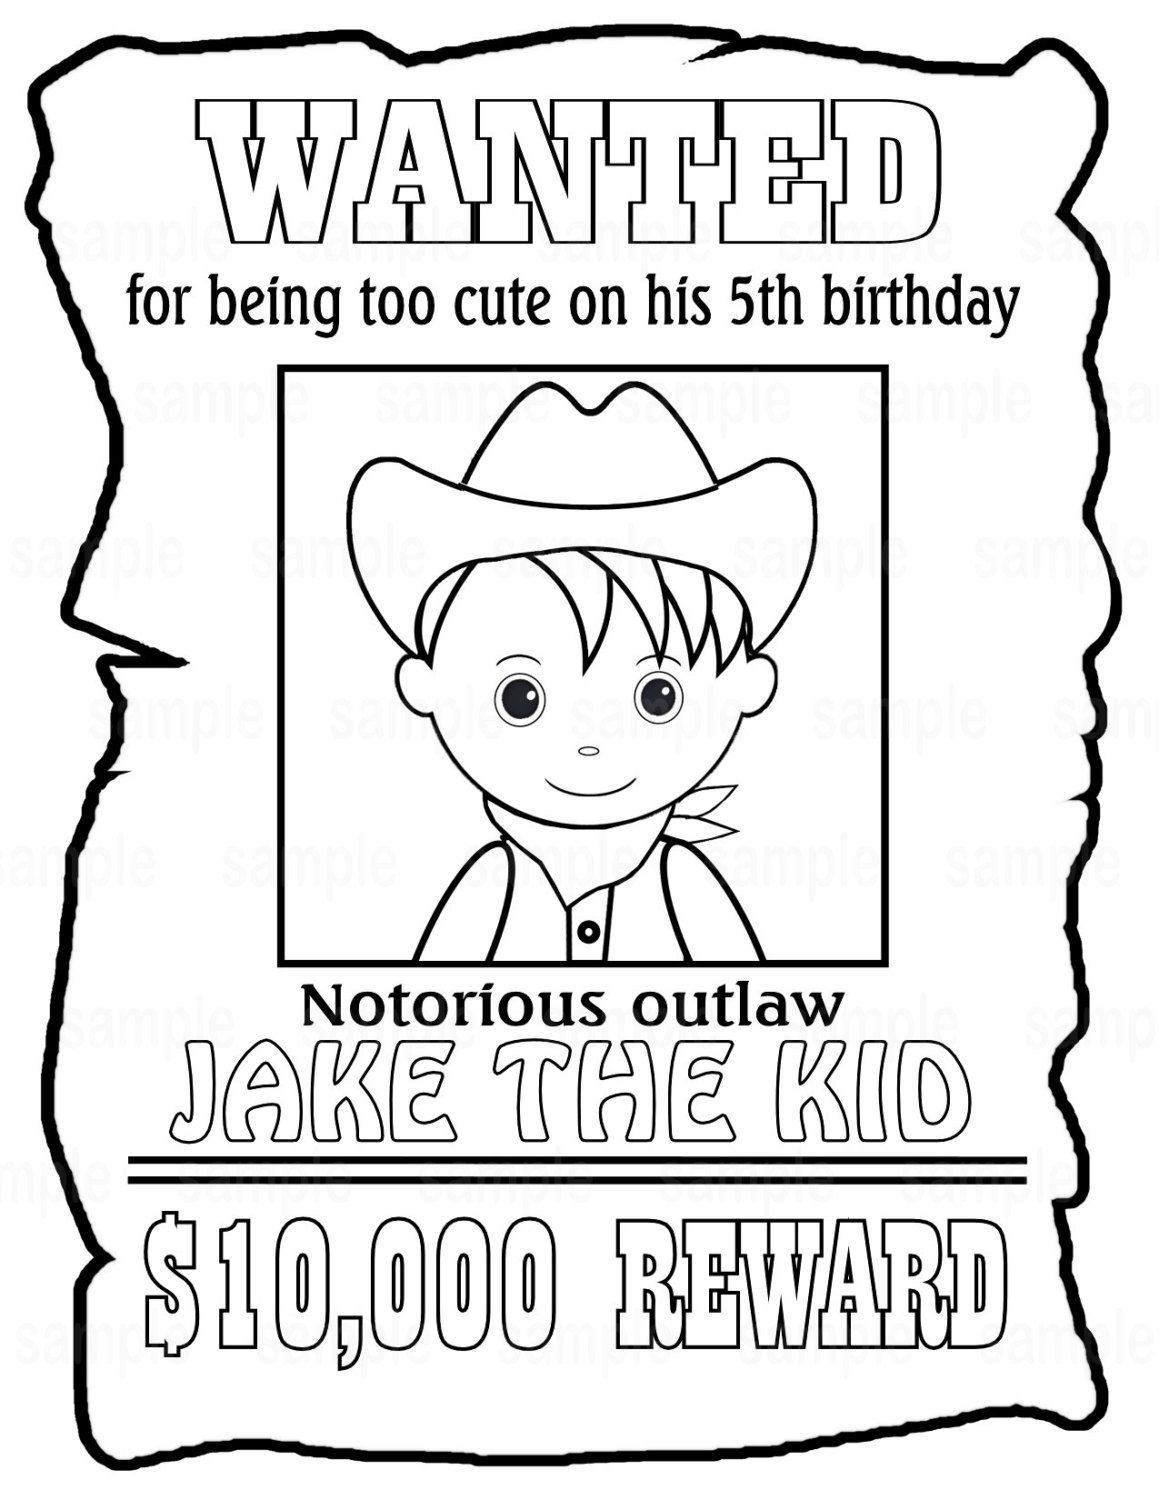 Personalized Printable Wanted Cowboy Poster Birthday Party Favor ...